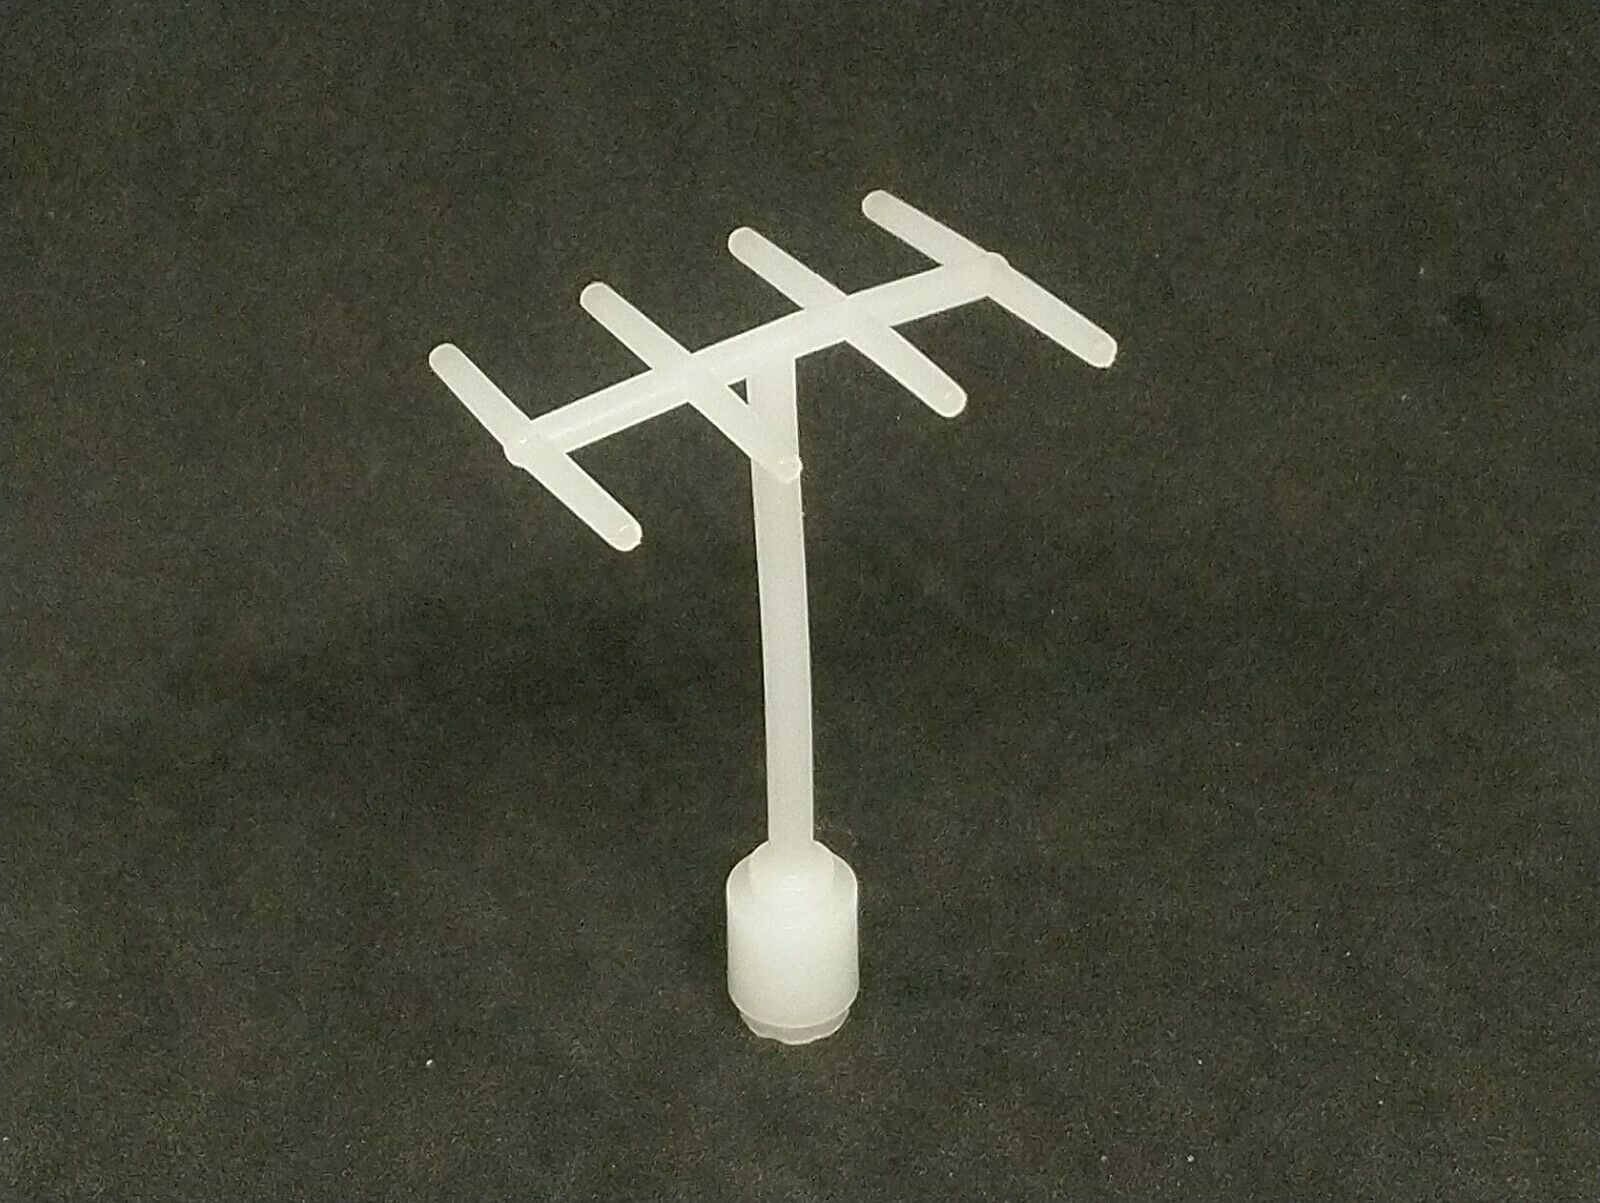 Lego Antenna with 8 Side Spokes, Vintage [3144] - Milky White x1